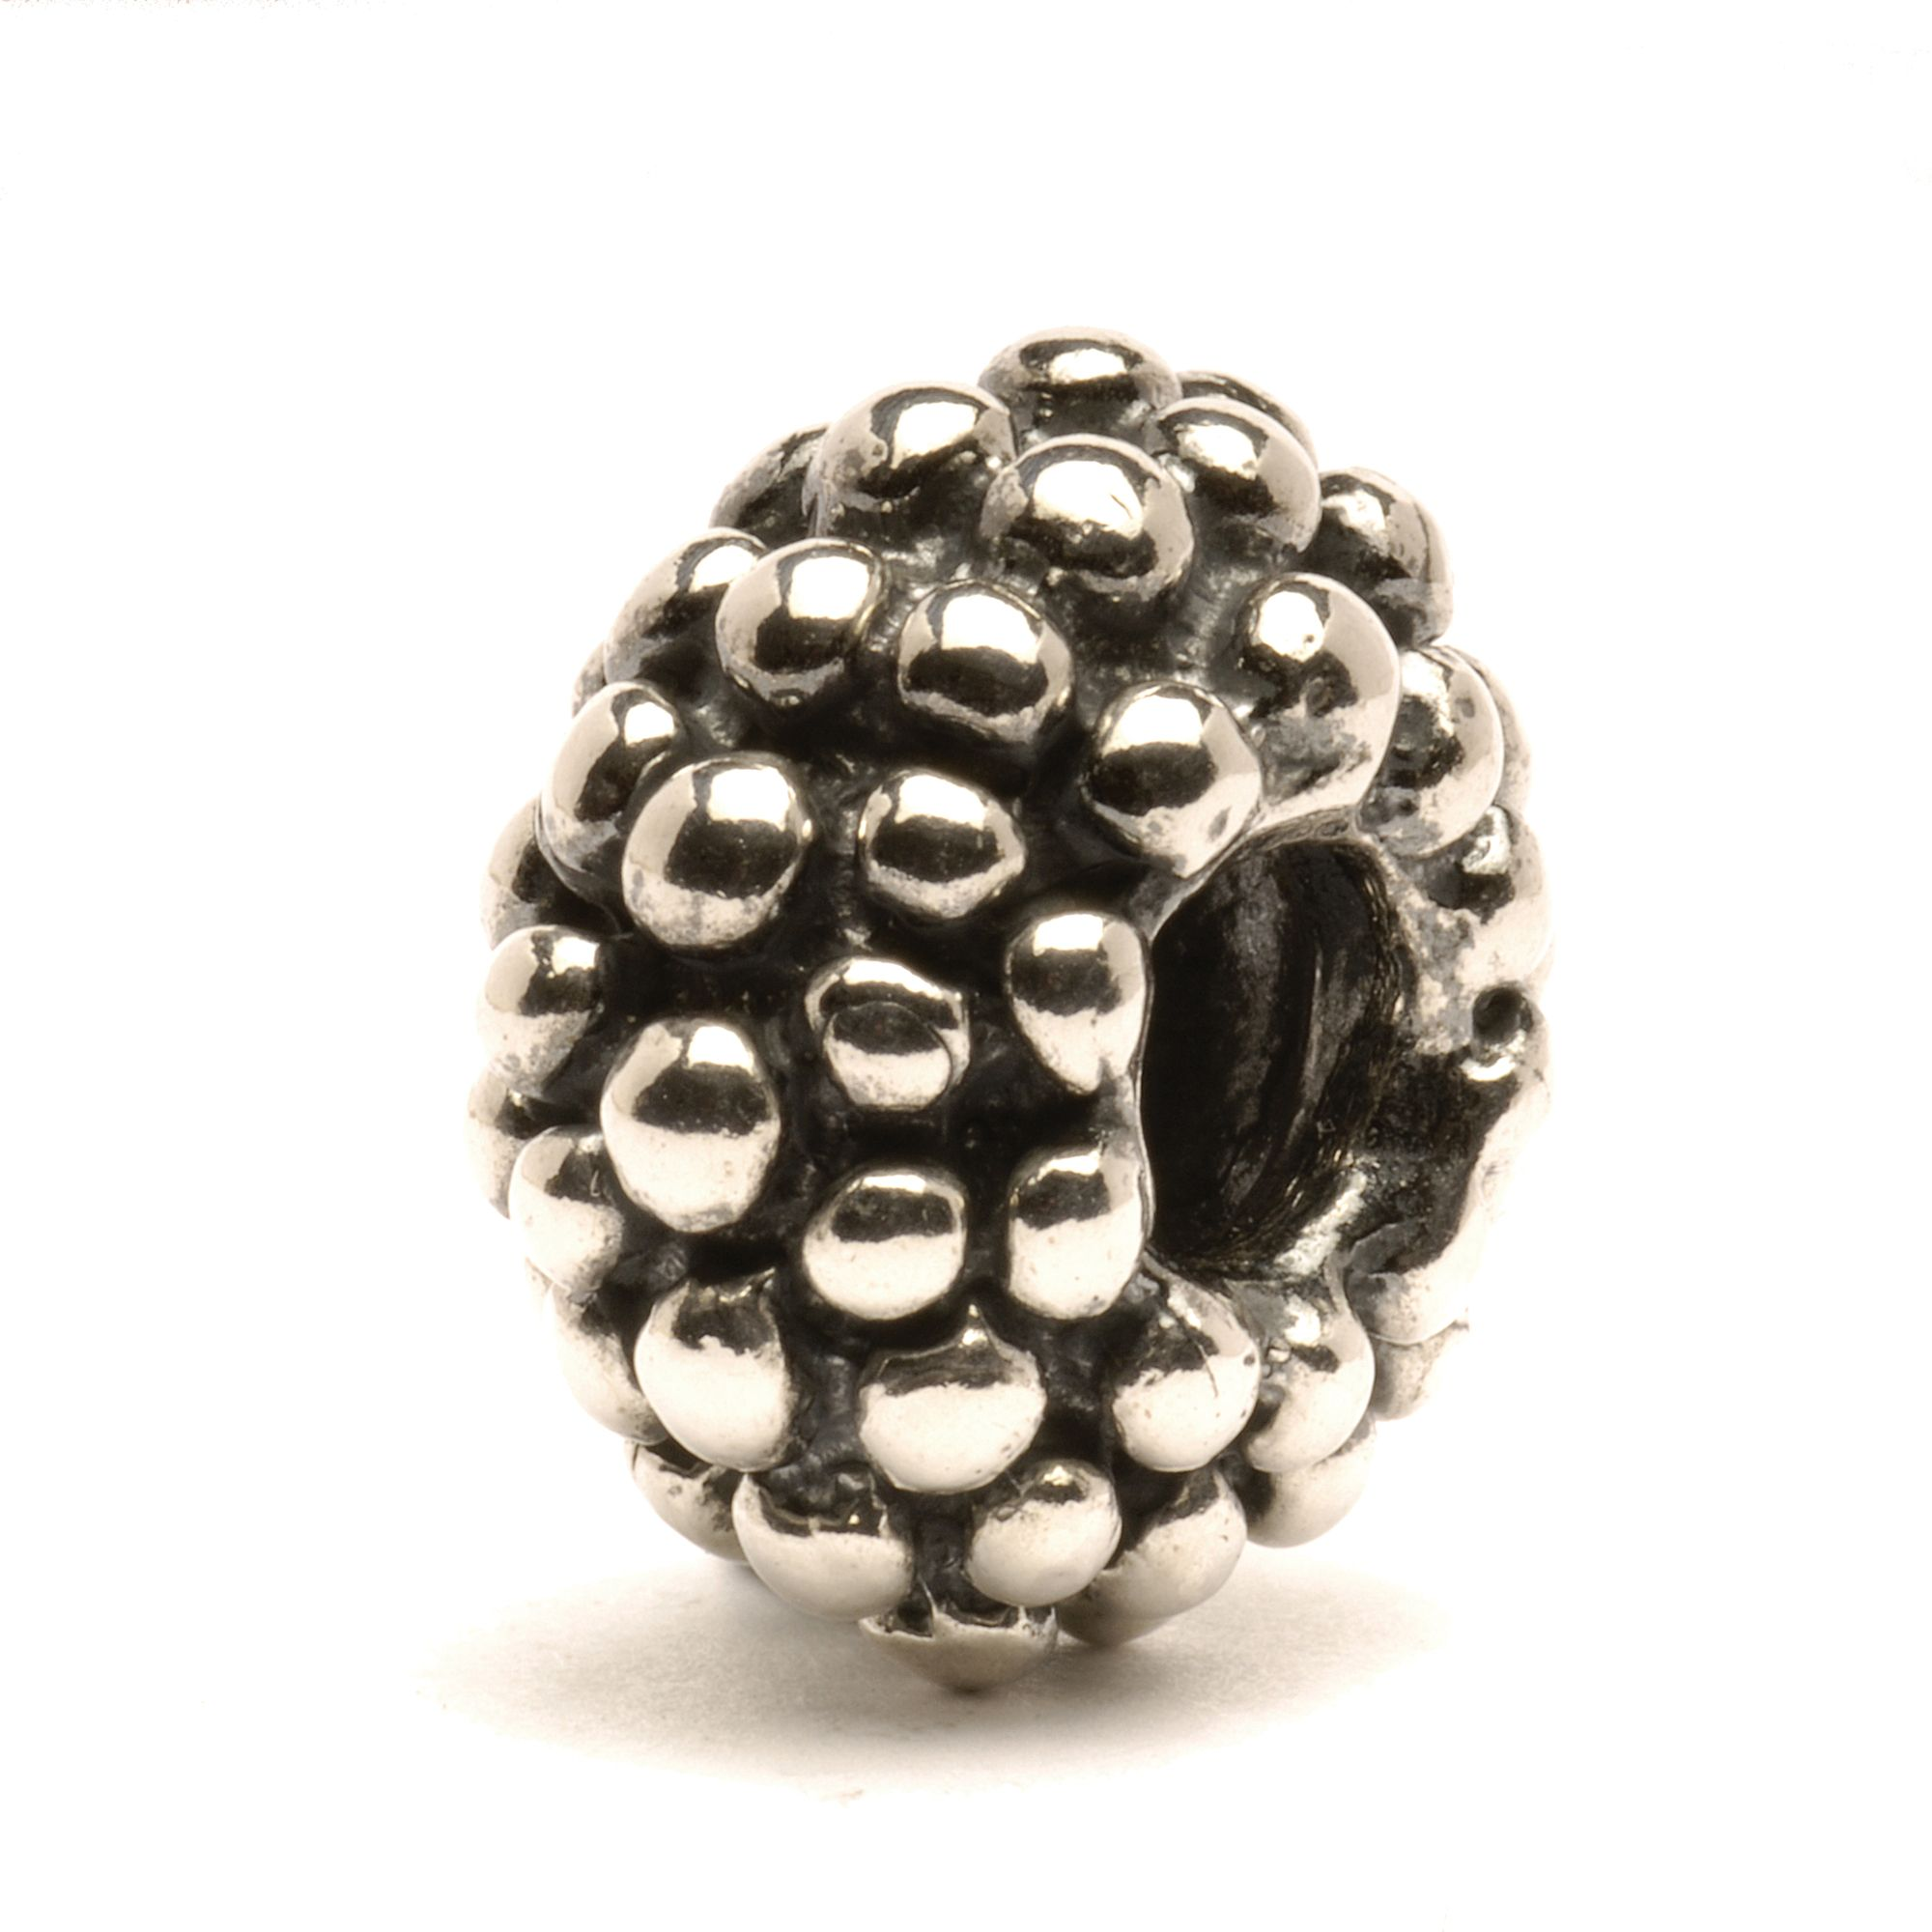 Large Berry silver charm bead